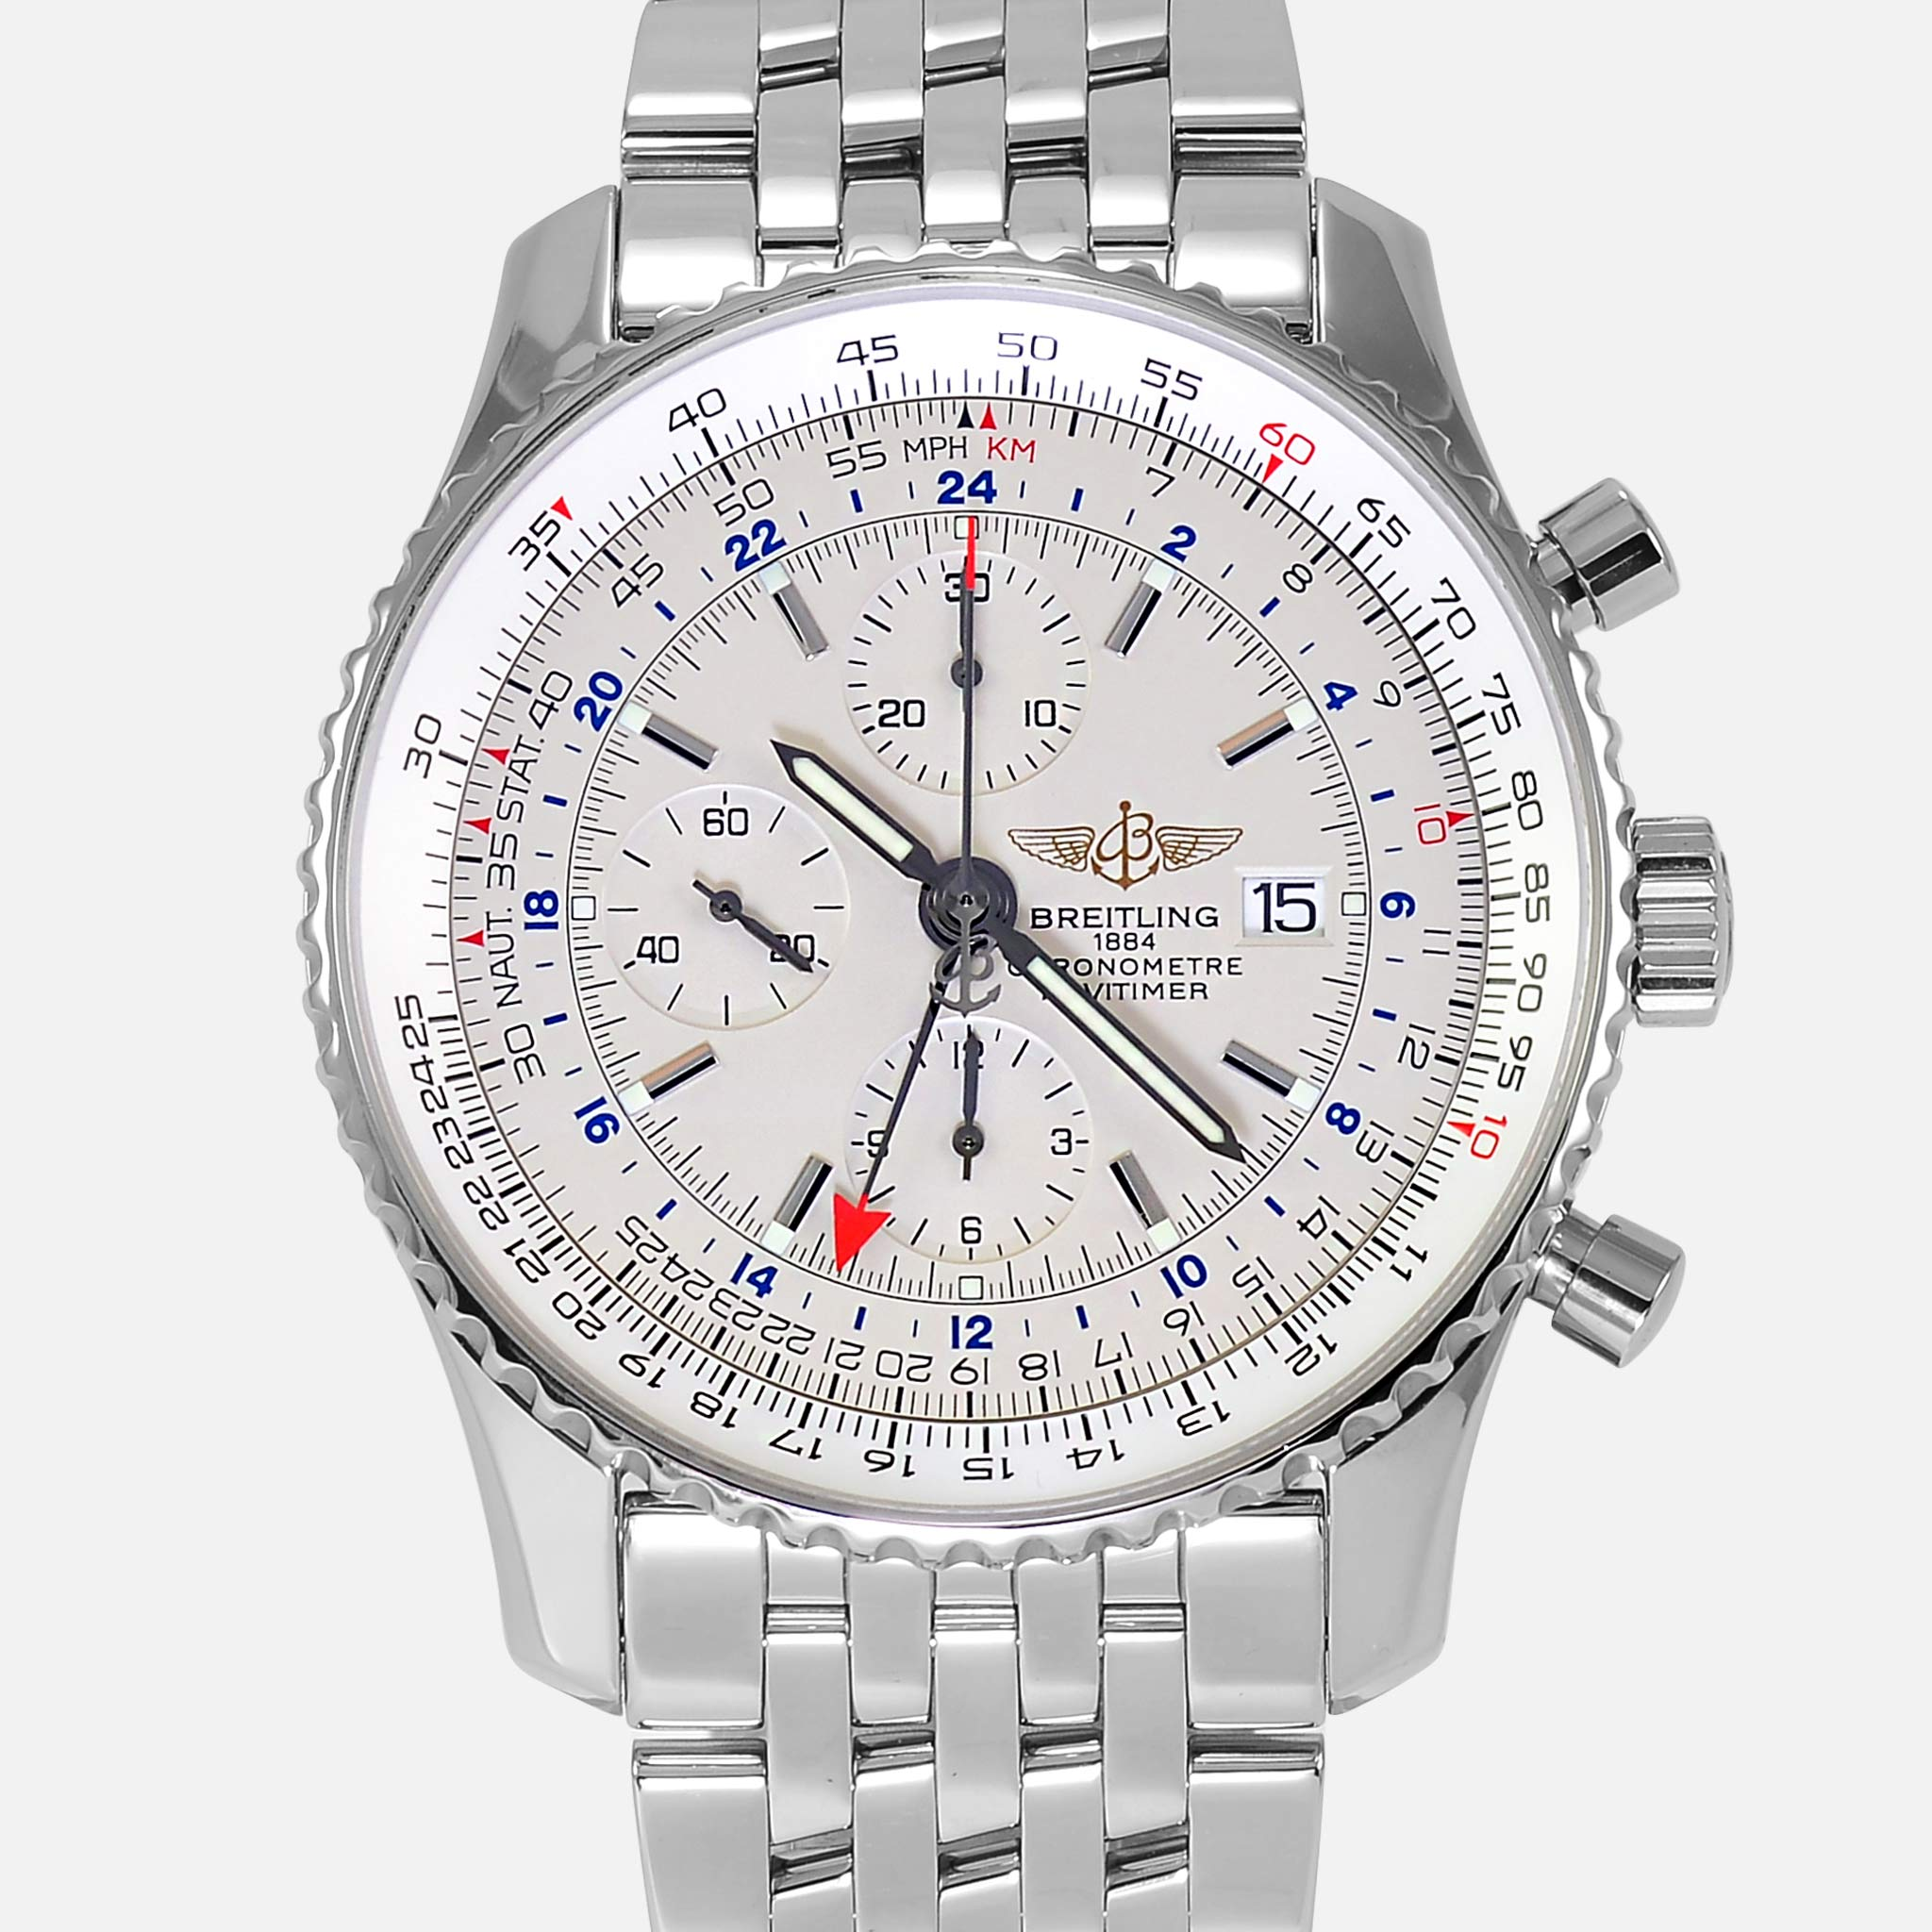 Breitling Navitimer World Gmt 2nd Time Zone A24322 Mens Watch